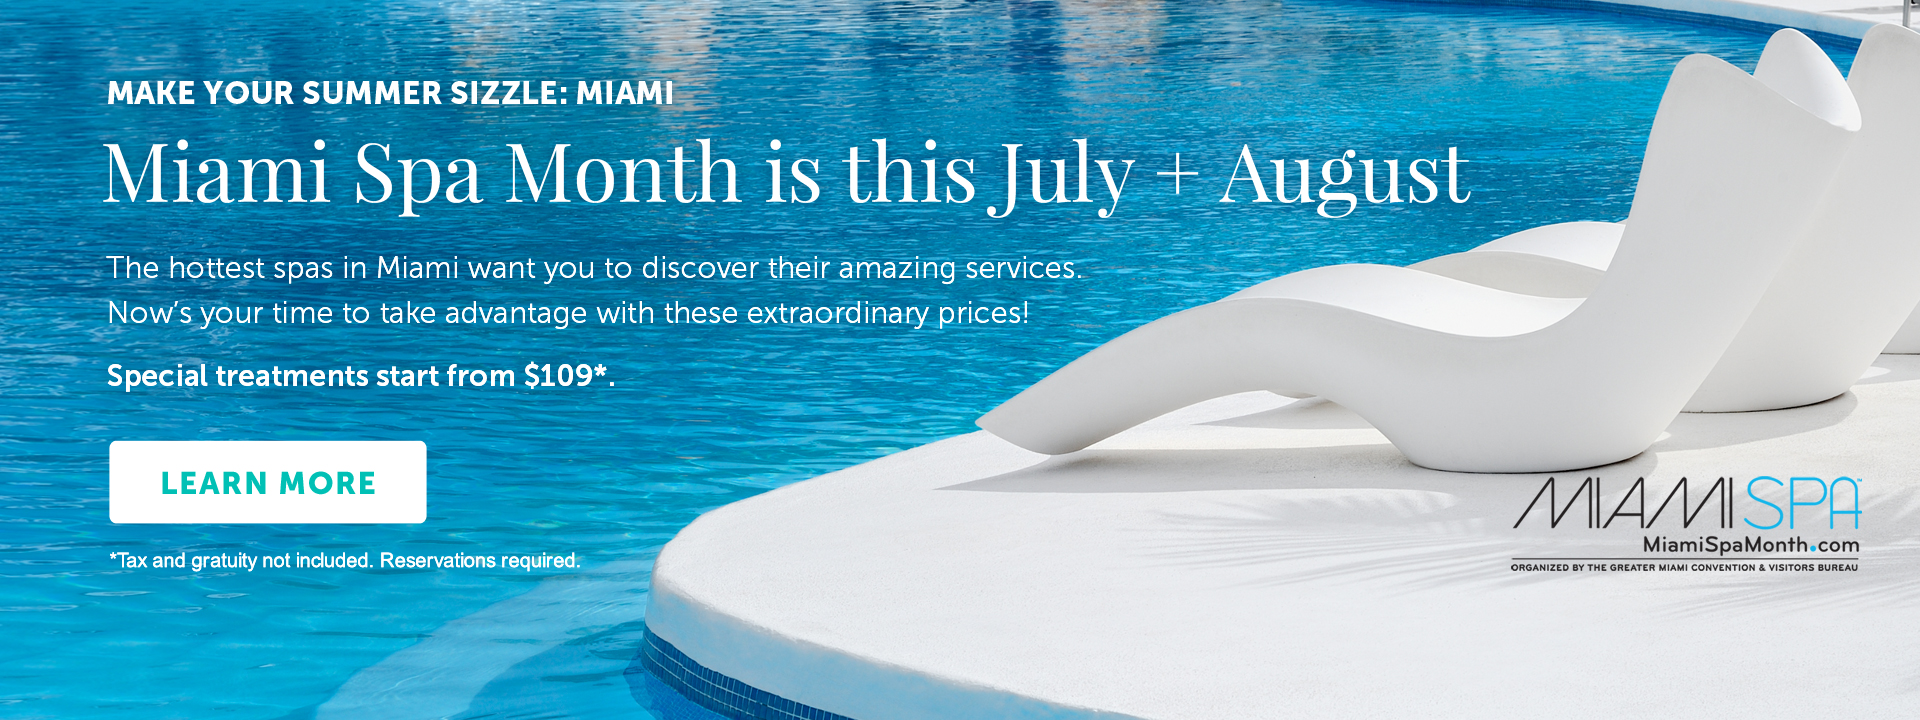 Make Your Summer Sizzle: Miami. The hottest spas in Miami want you to discover their amazing services - Now's your time to take advantage with these extraordinary prices! Special treatments start from $109*. Tax and gratuity not included. Reservations required.